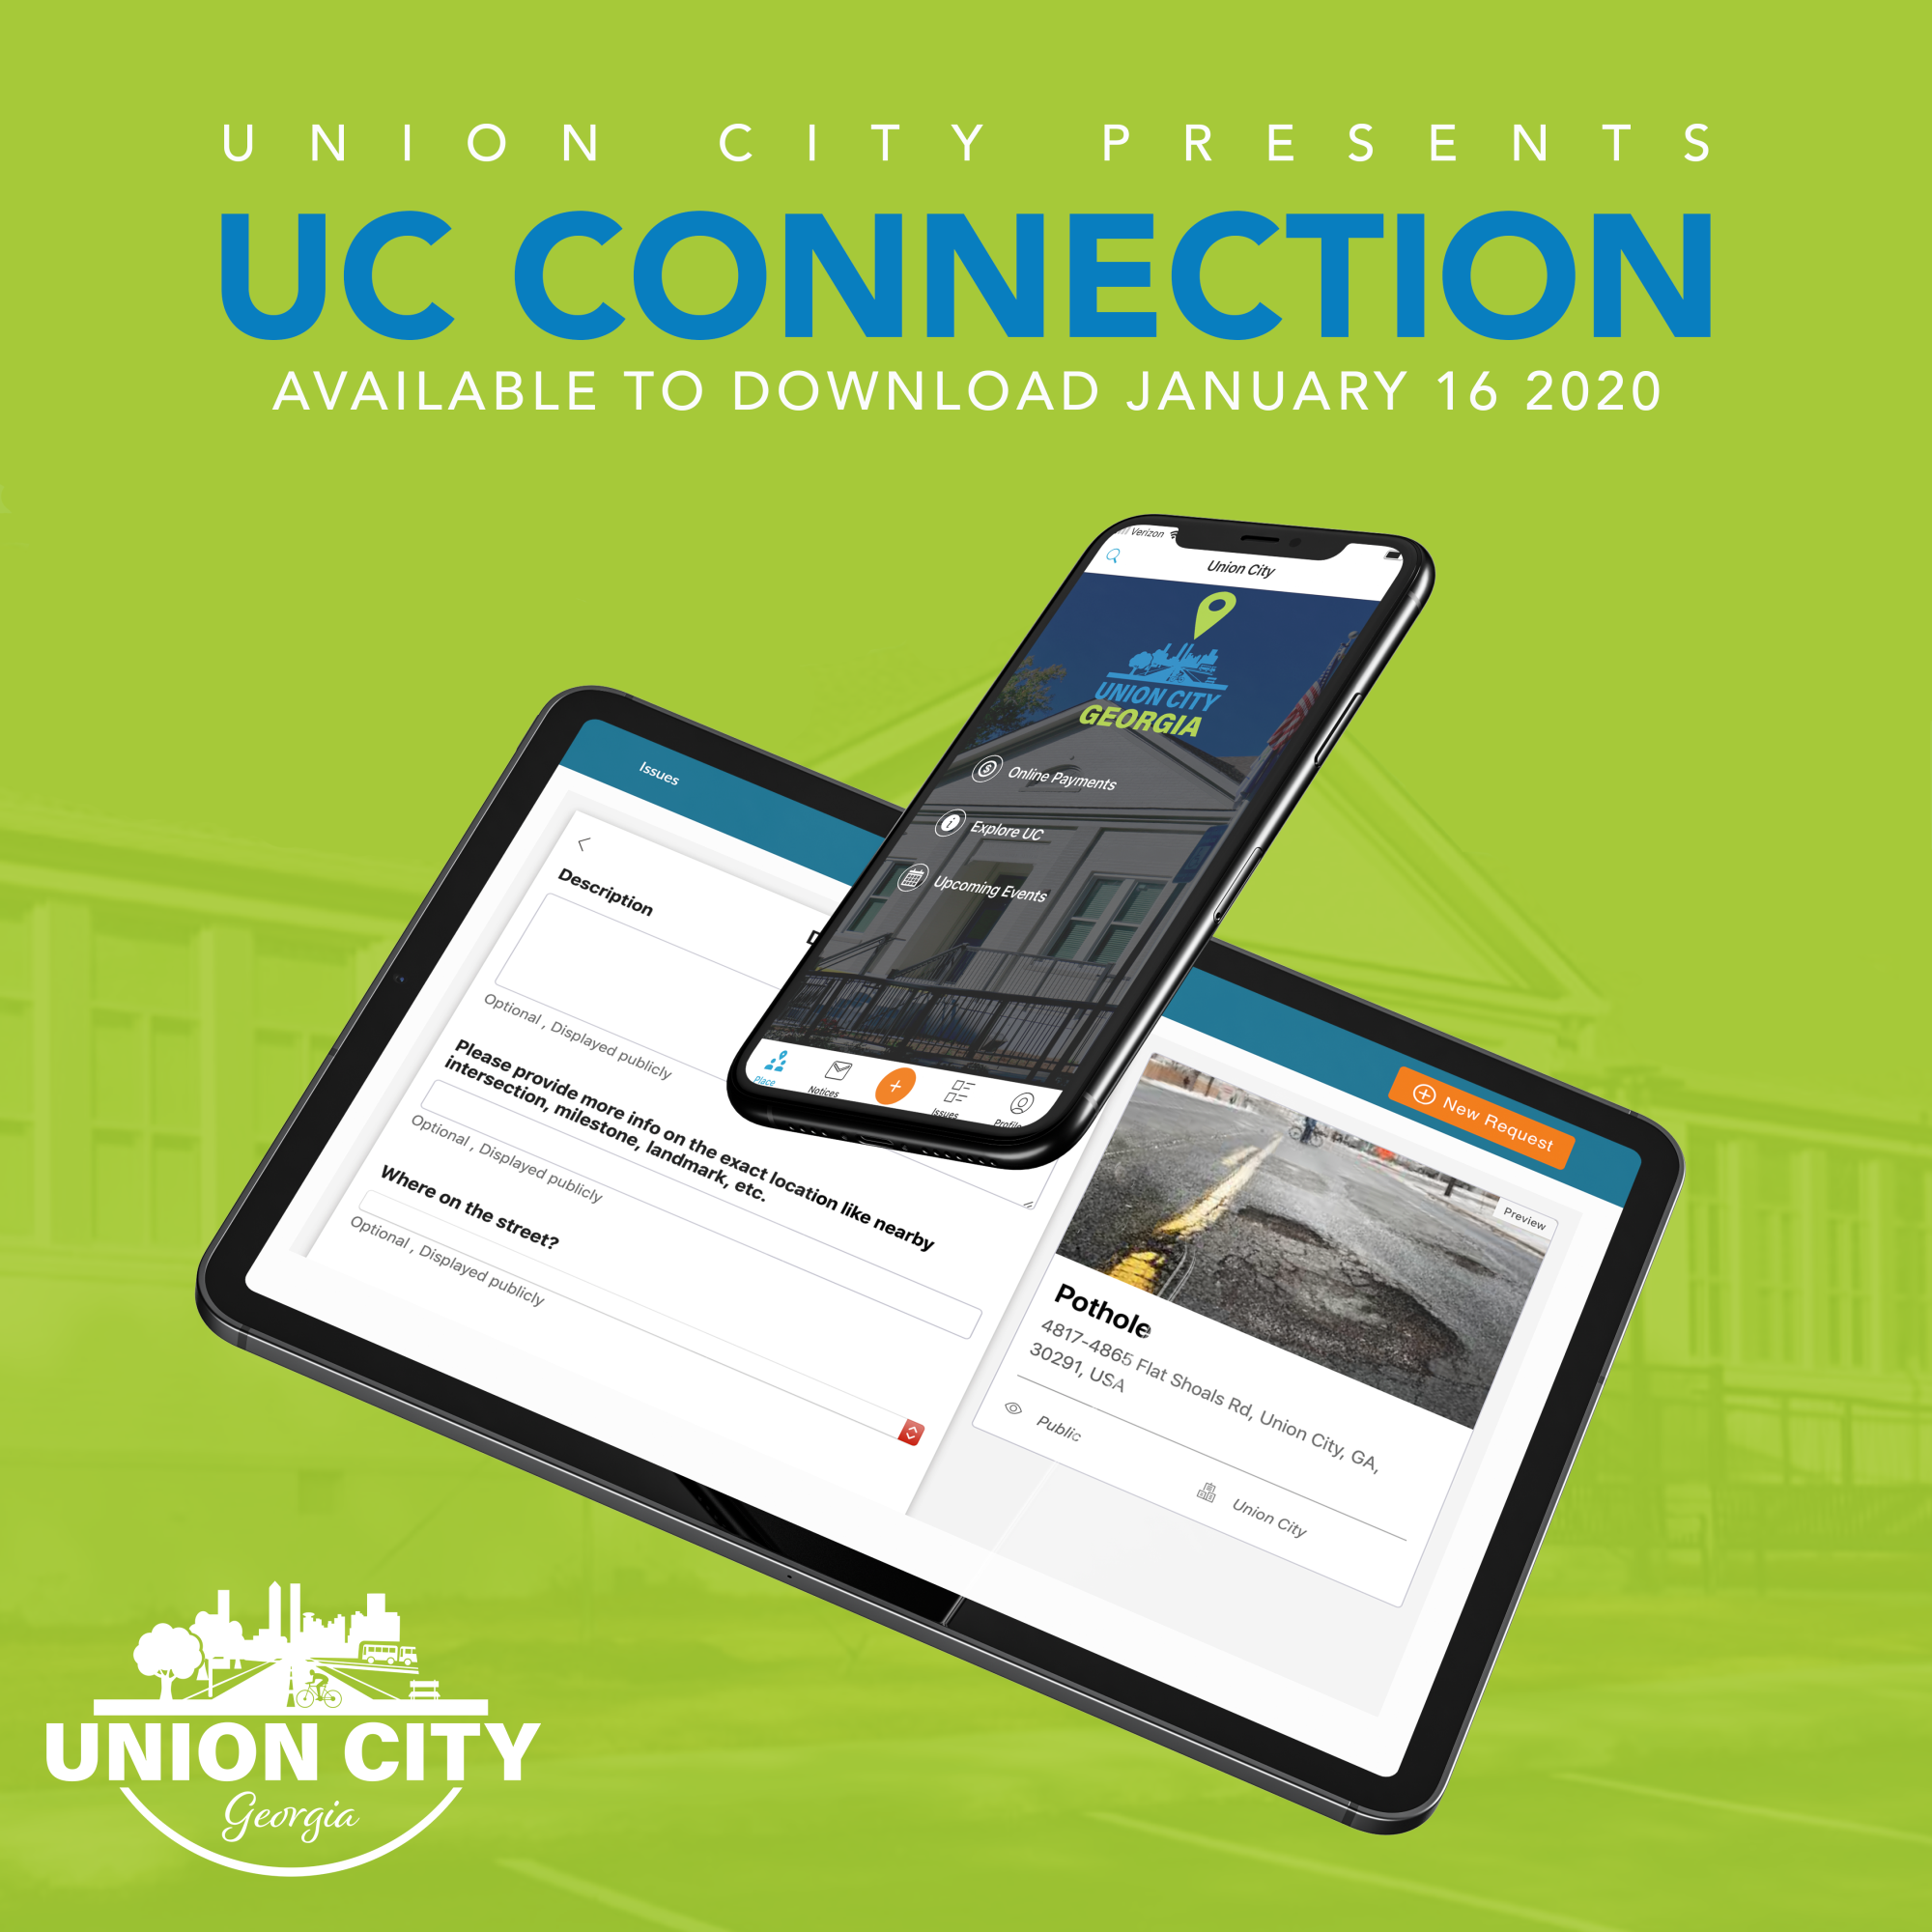 Union City Connection Available to Download January 16 2020.